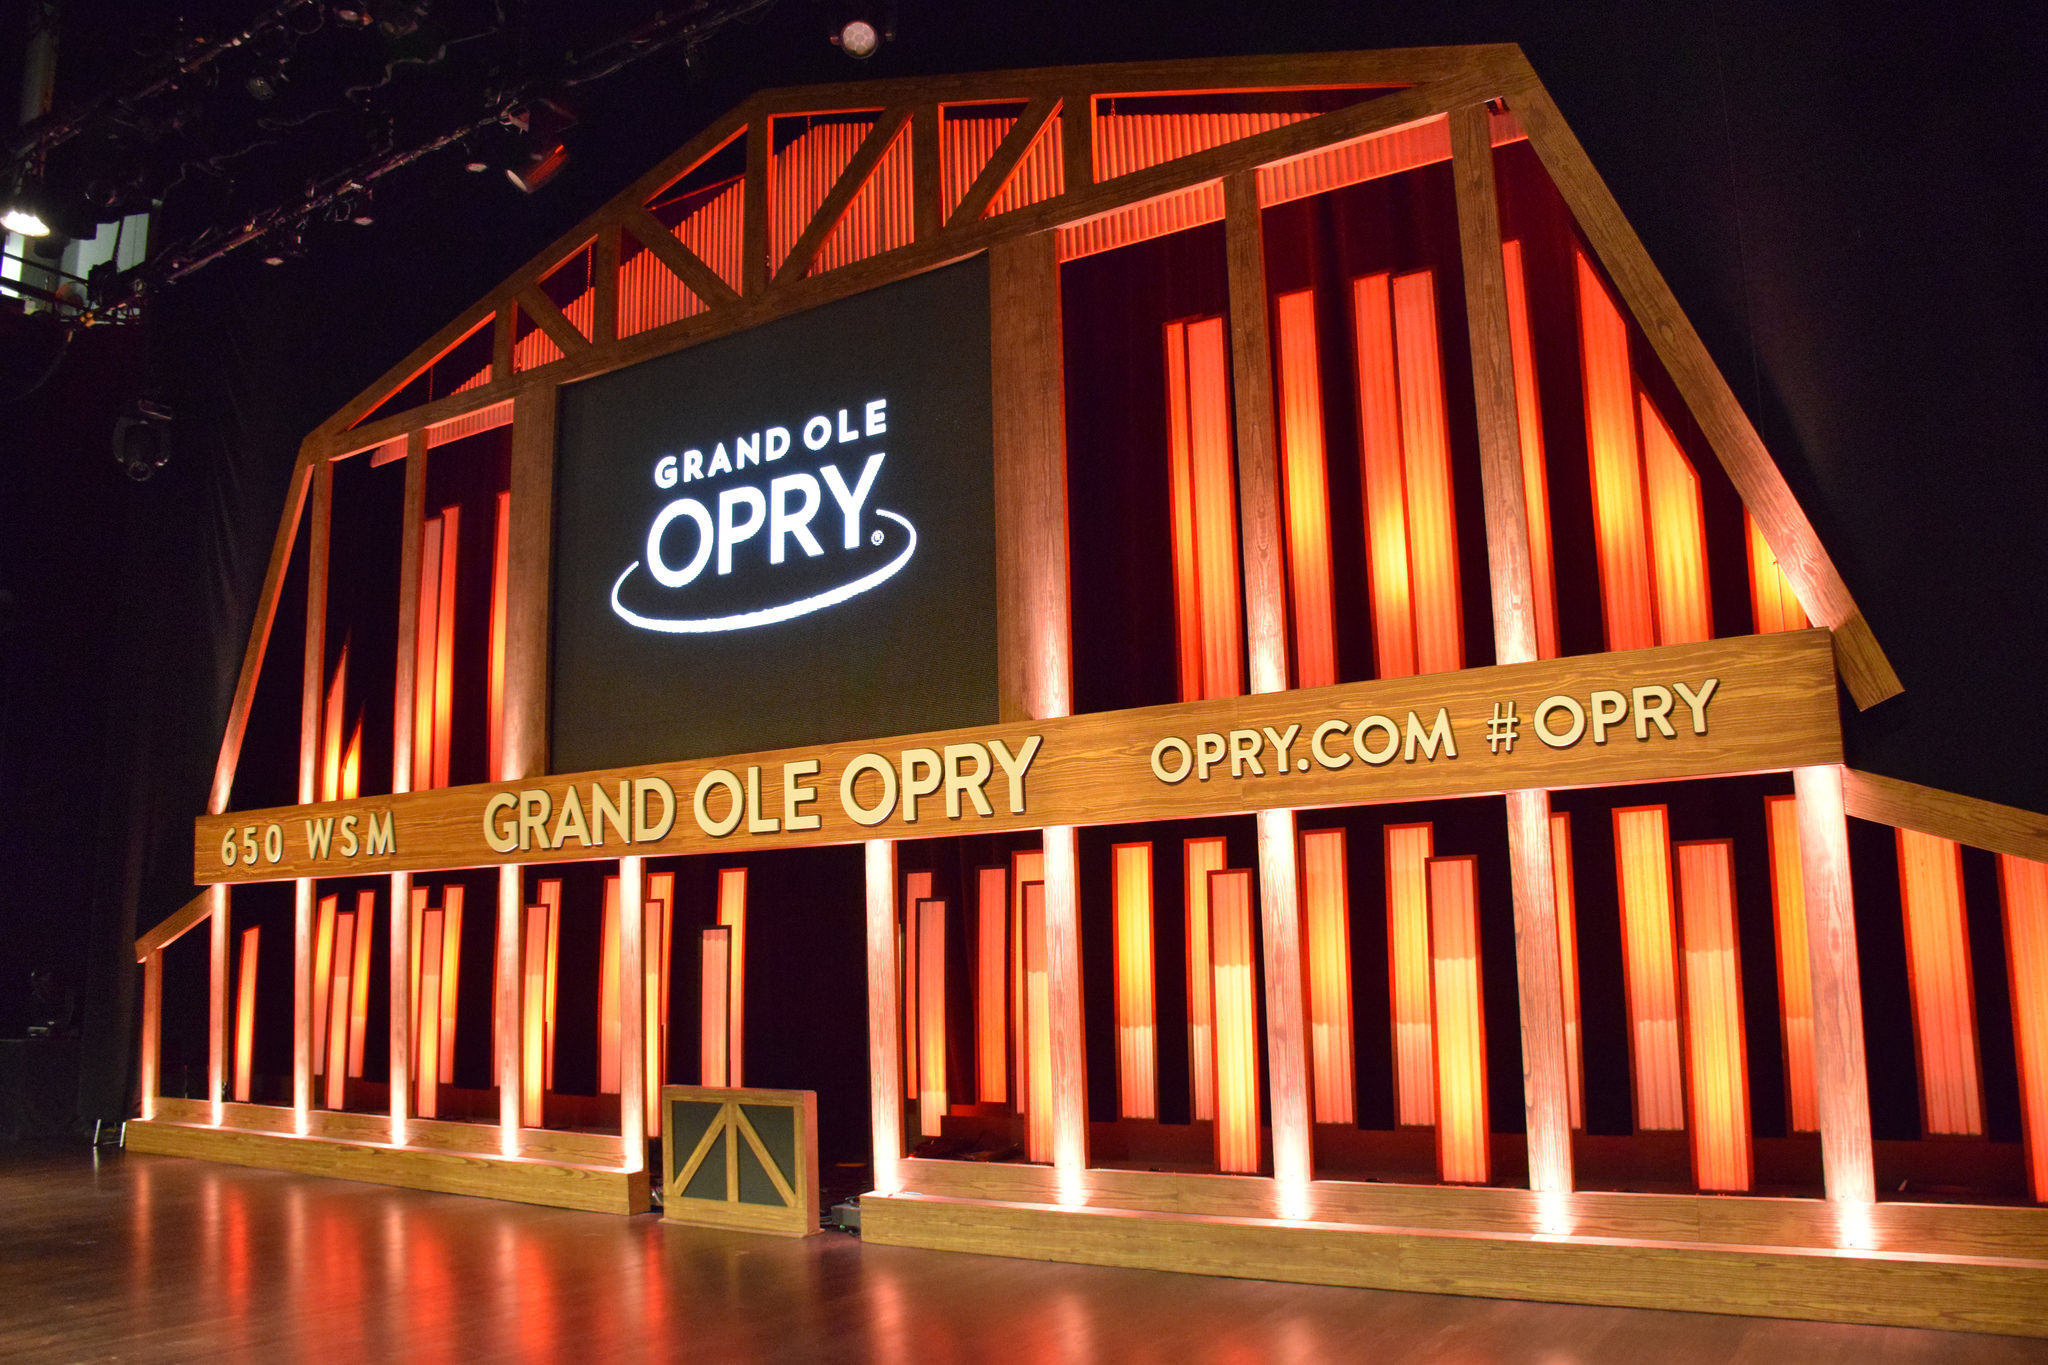 A History Of The Grand Ole Opry, The Longest Running U.S. Radio Show